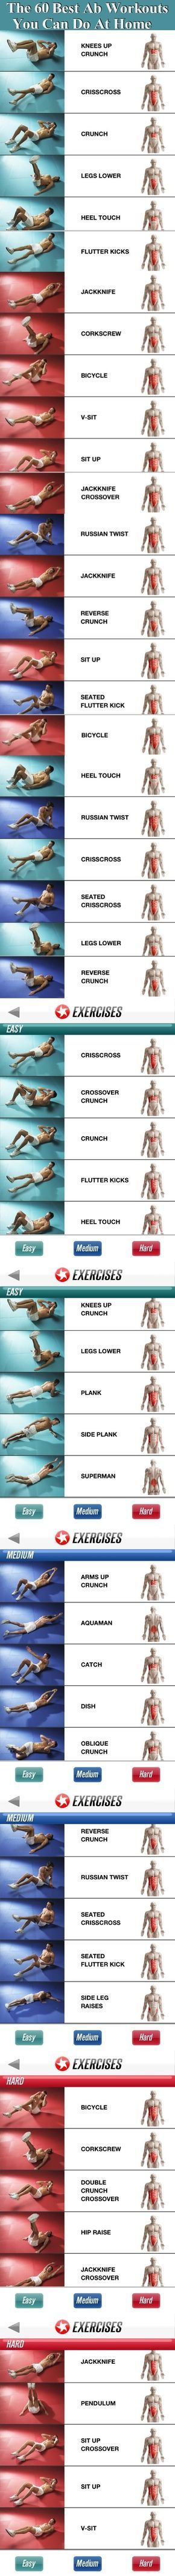 The 60 Best Ab Workouts You Can Do From Home Pictures, Photos, and Images for Fa… Air Mitchell